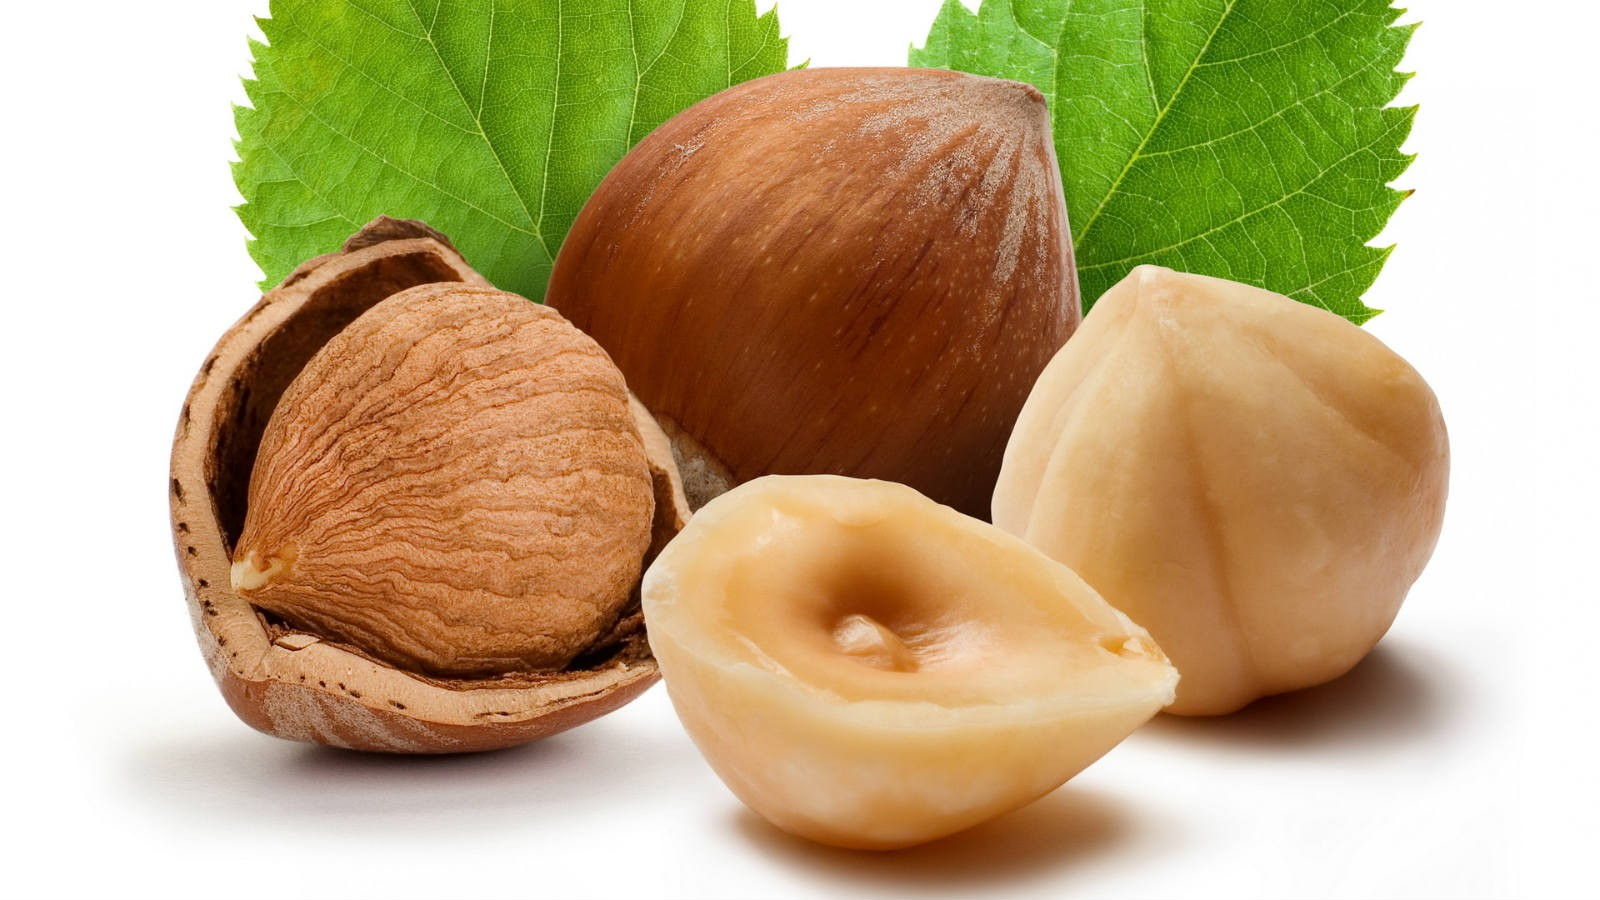 Photo Credit: http://www.bestherbalhealth.com/wp-content/uploads/2014/01/hazelnuts1.jpg